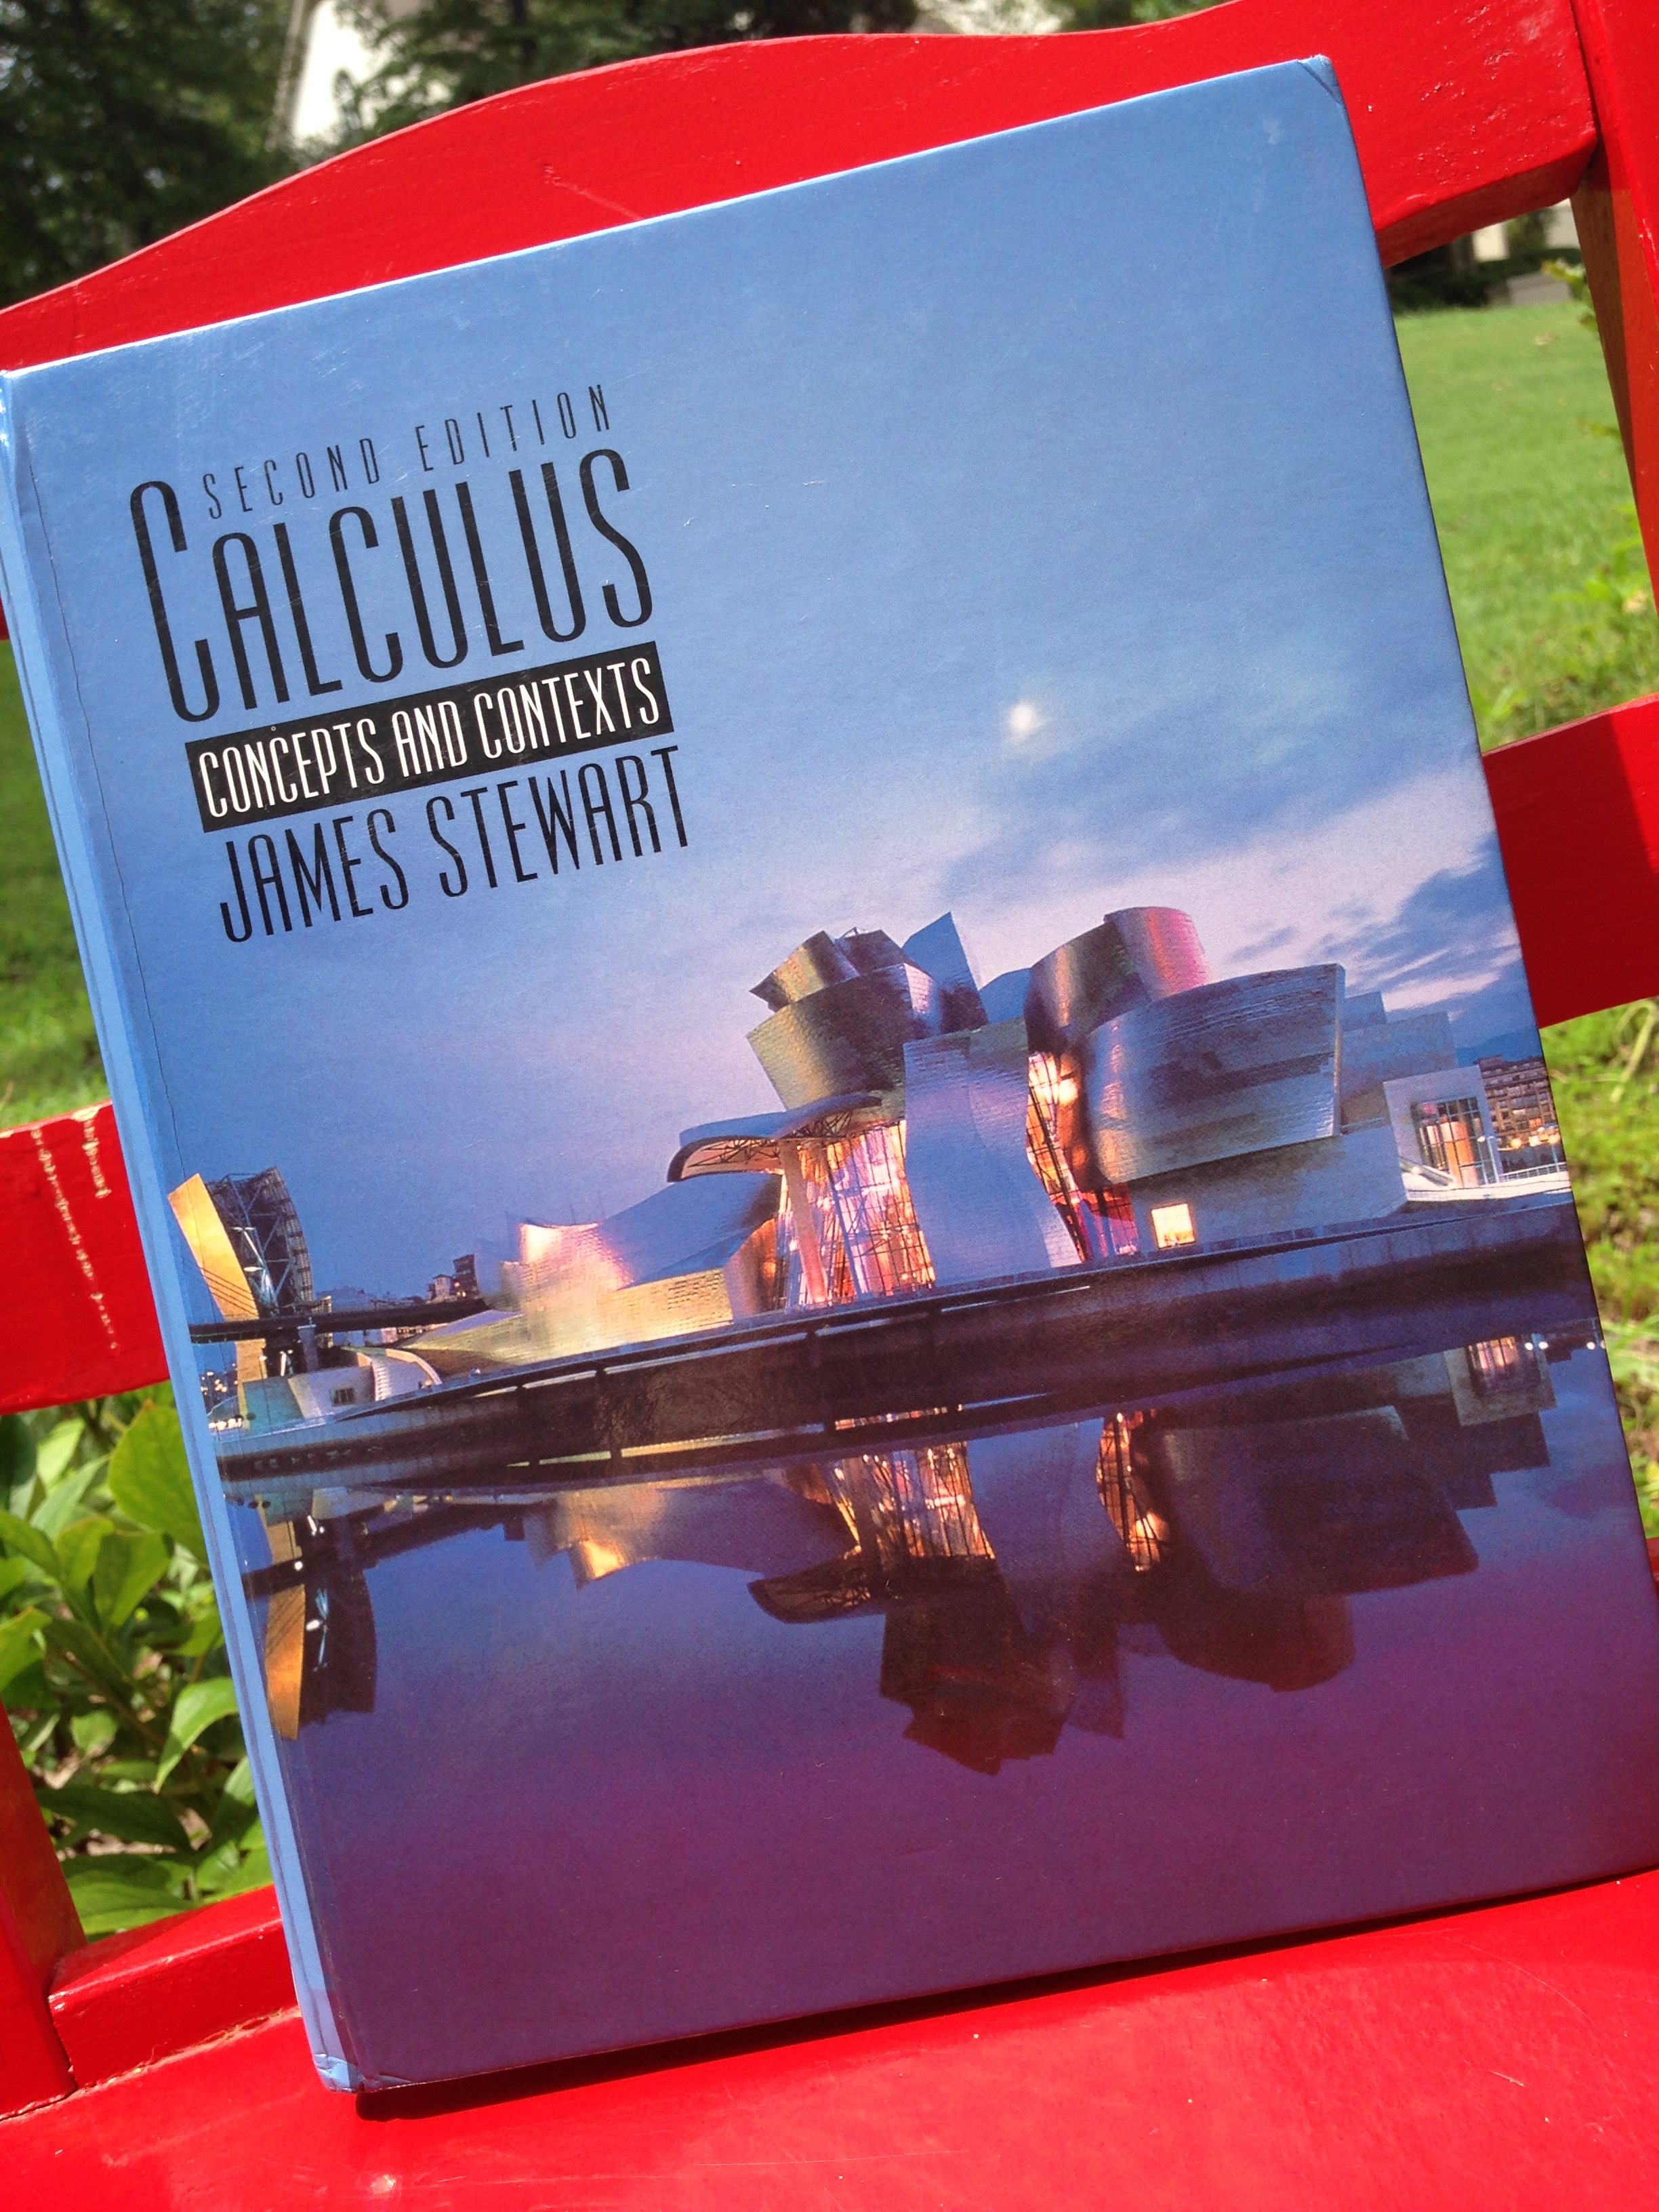 Calculus textbook with a building facing a lake and a blue sky. The textbook is sitting on a chair